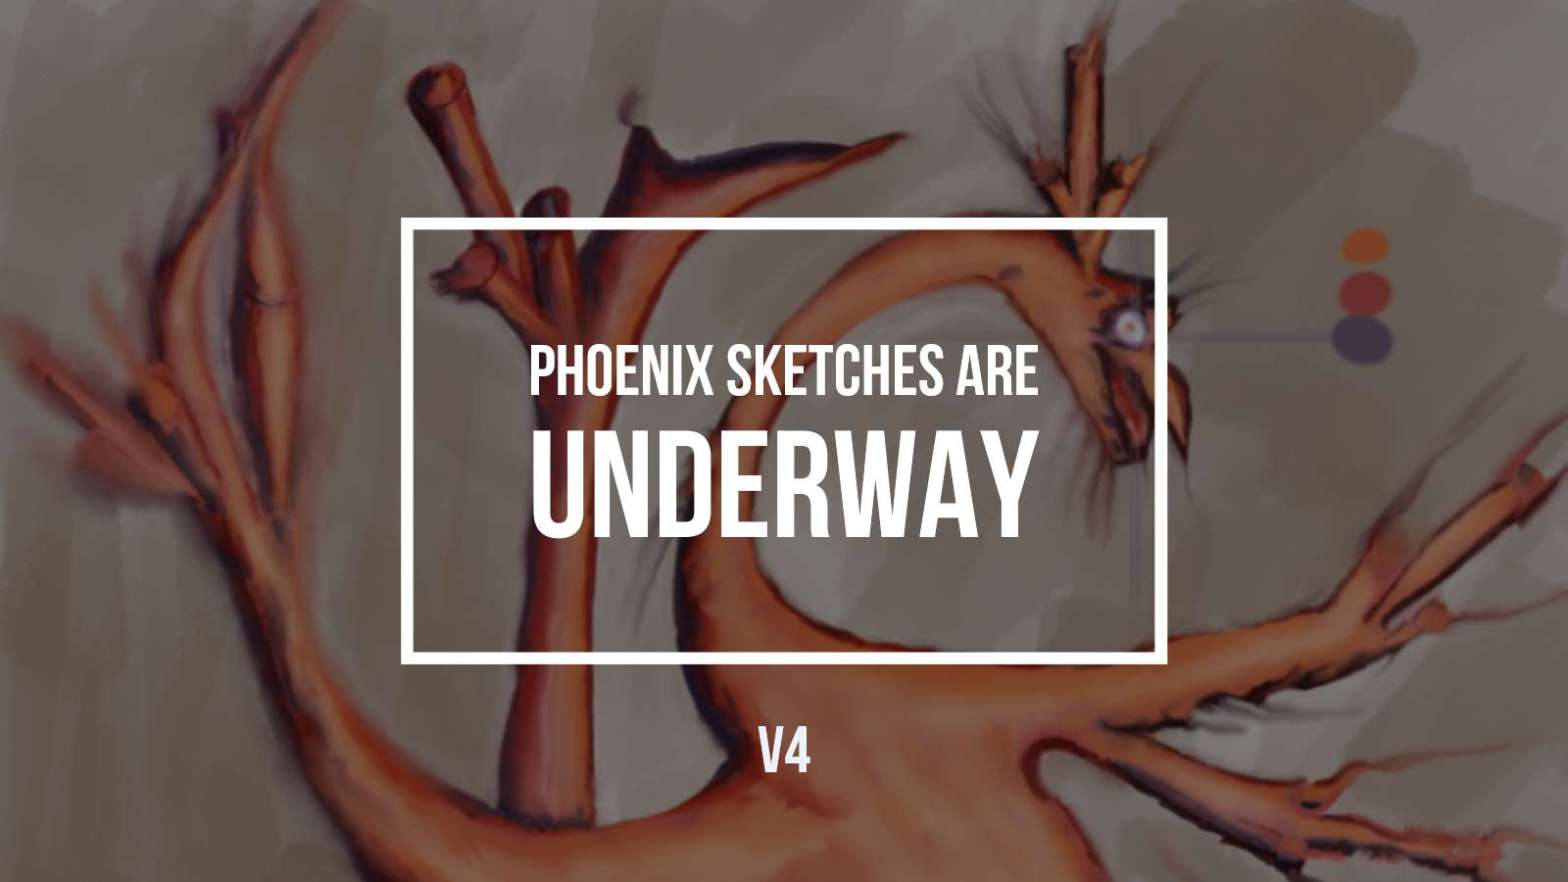 Video Clips & Phoenix Sketches are Underway V4 Final